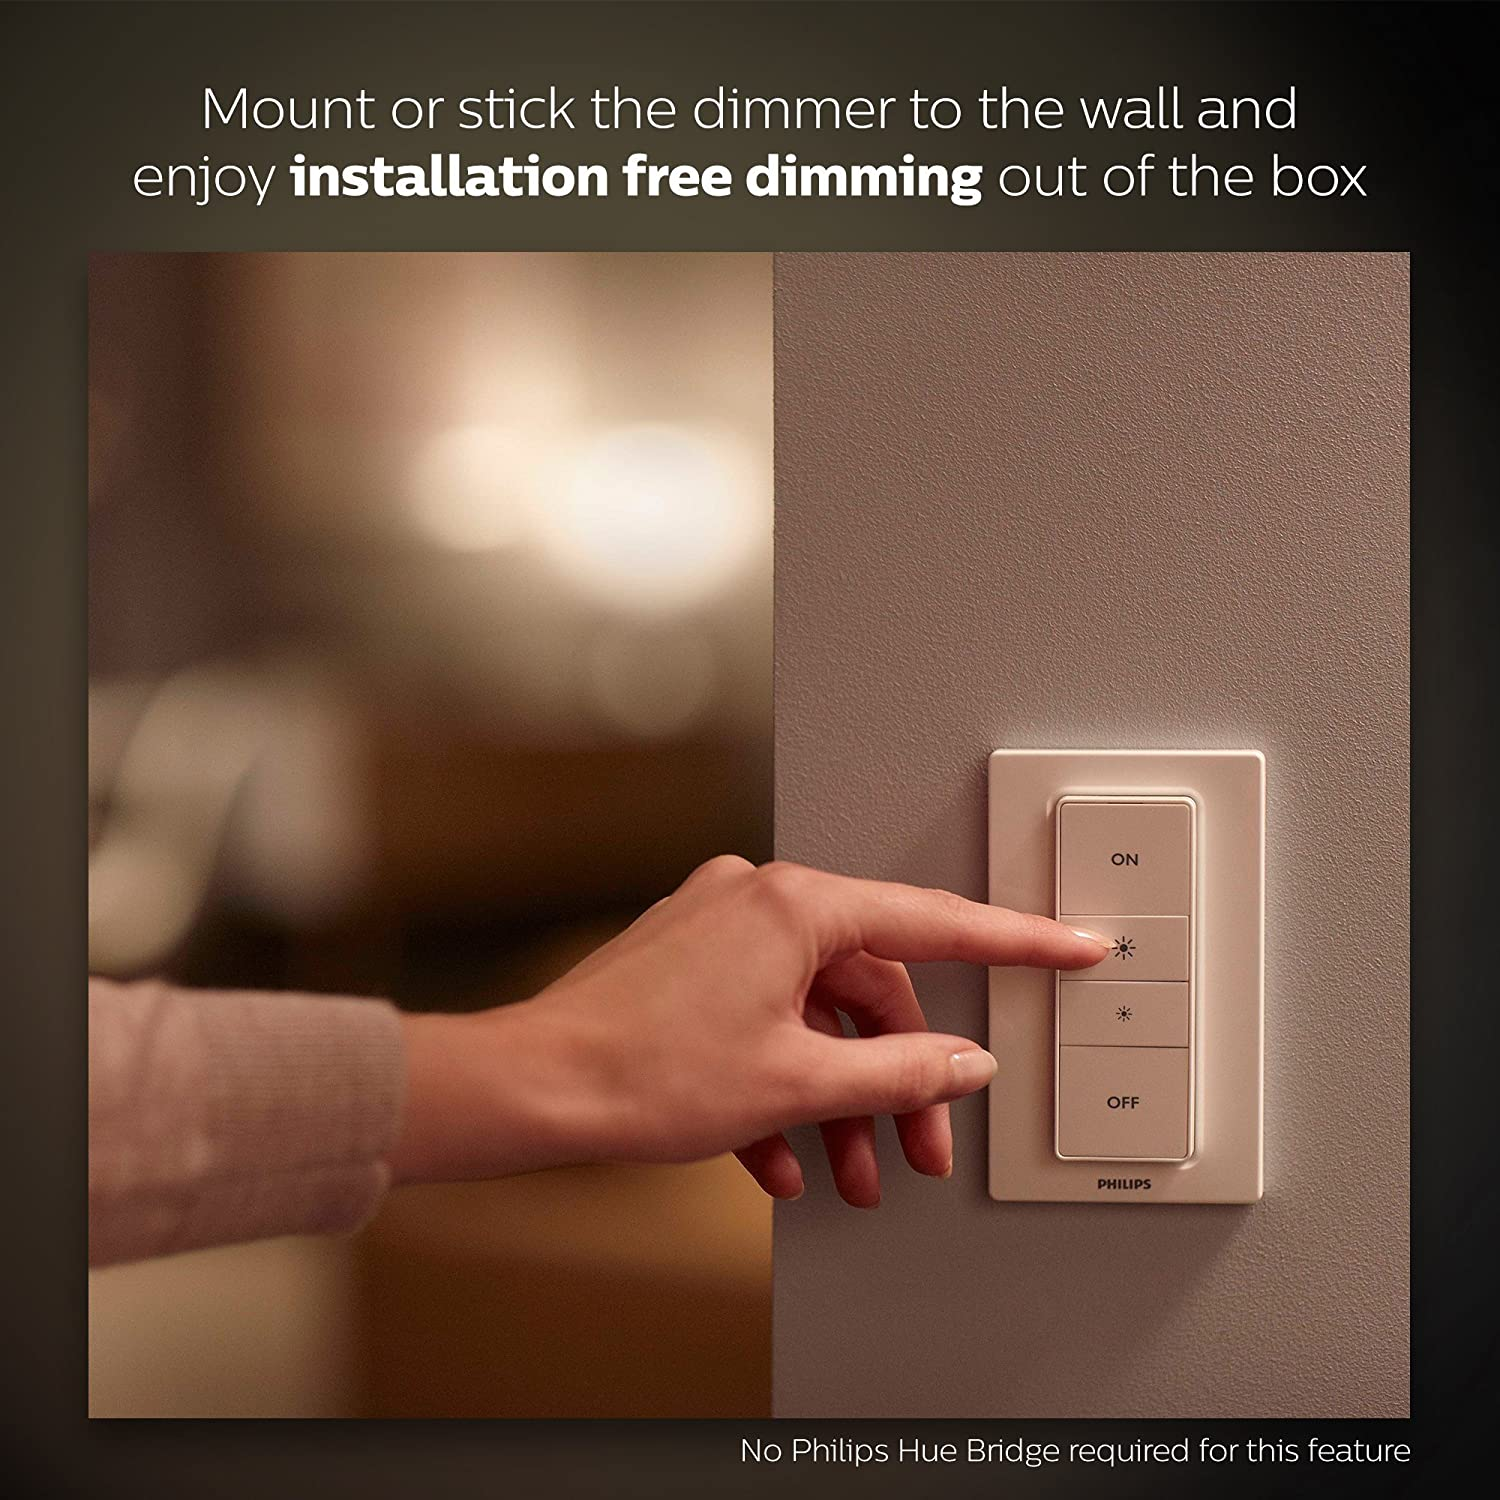 Philips Hue Smart Wireless Dimming Kit Installation Free Exclusive Fitting Dimmer Switch To Old Electrical Wiringdimmerinstructionsjpg For Lights Compatible With Amazon Alexa Apple Homekit And Google